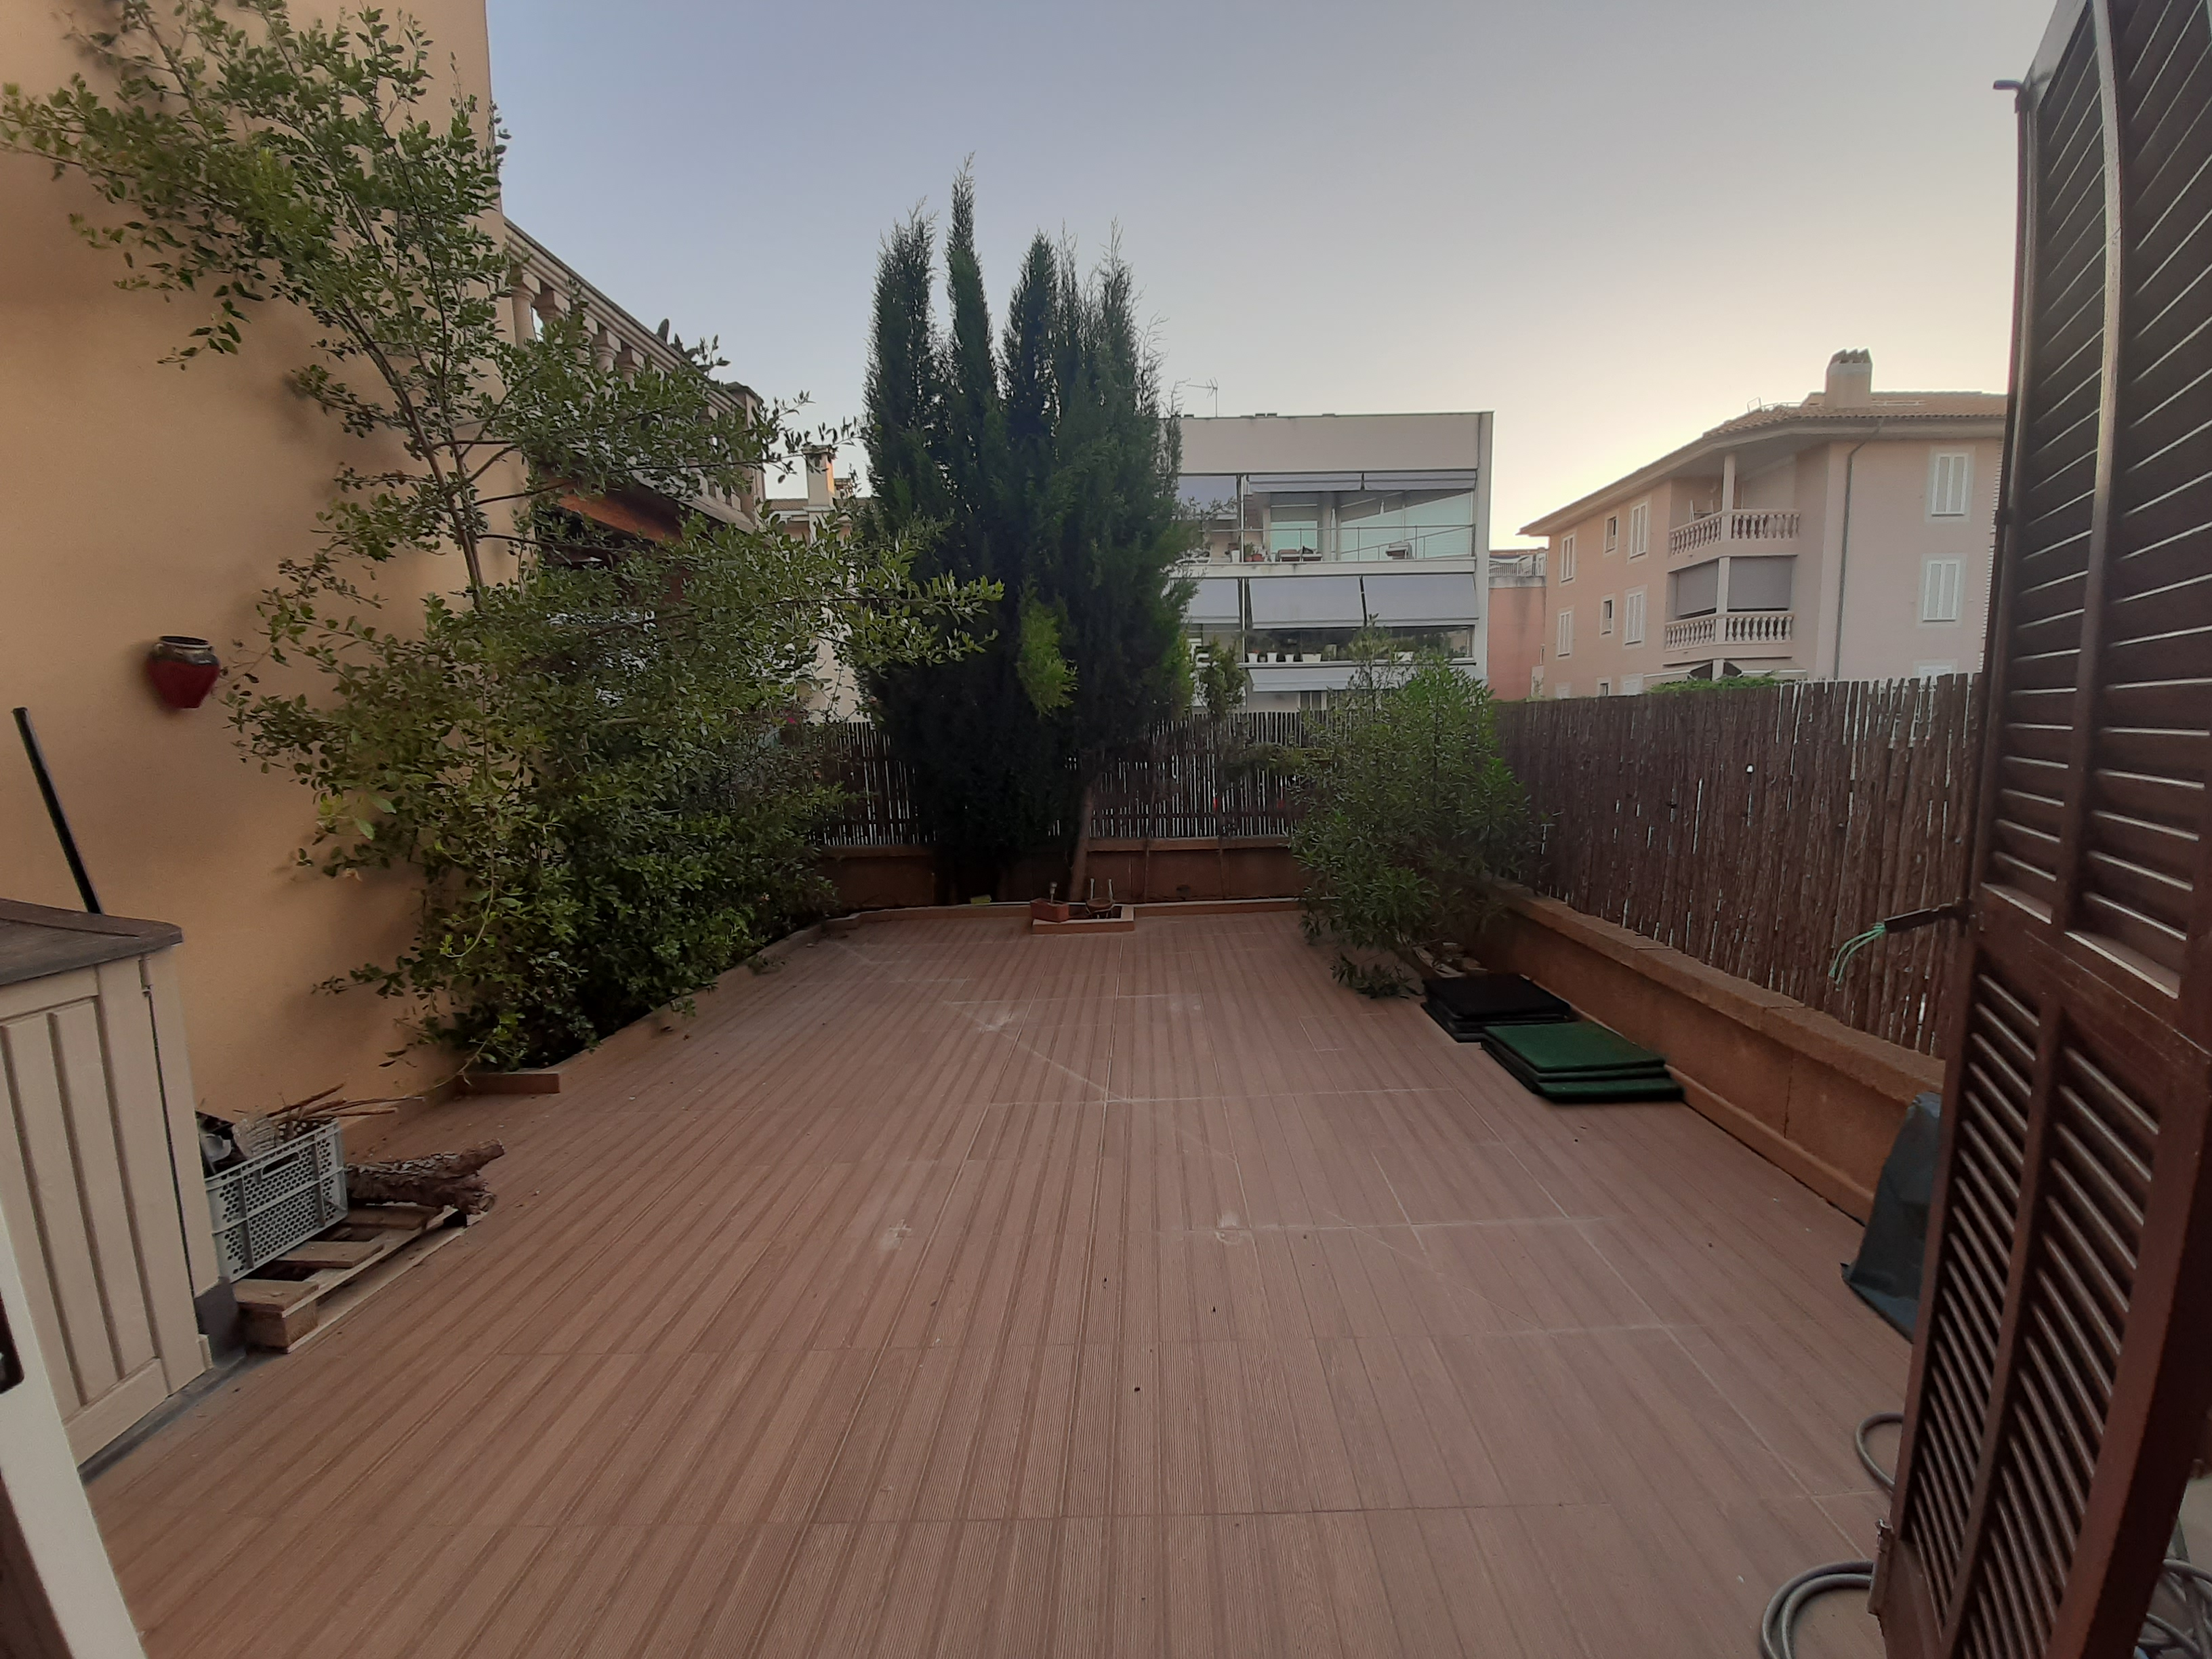 Rent House  Carrer de binissalem